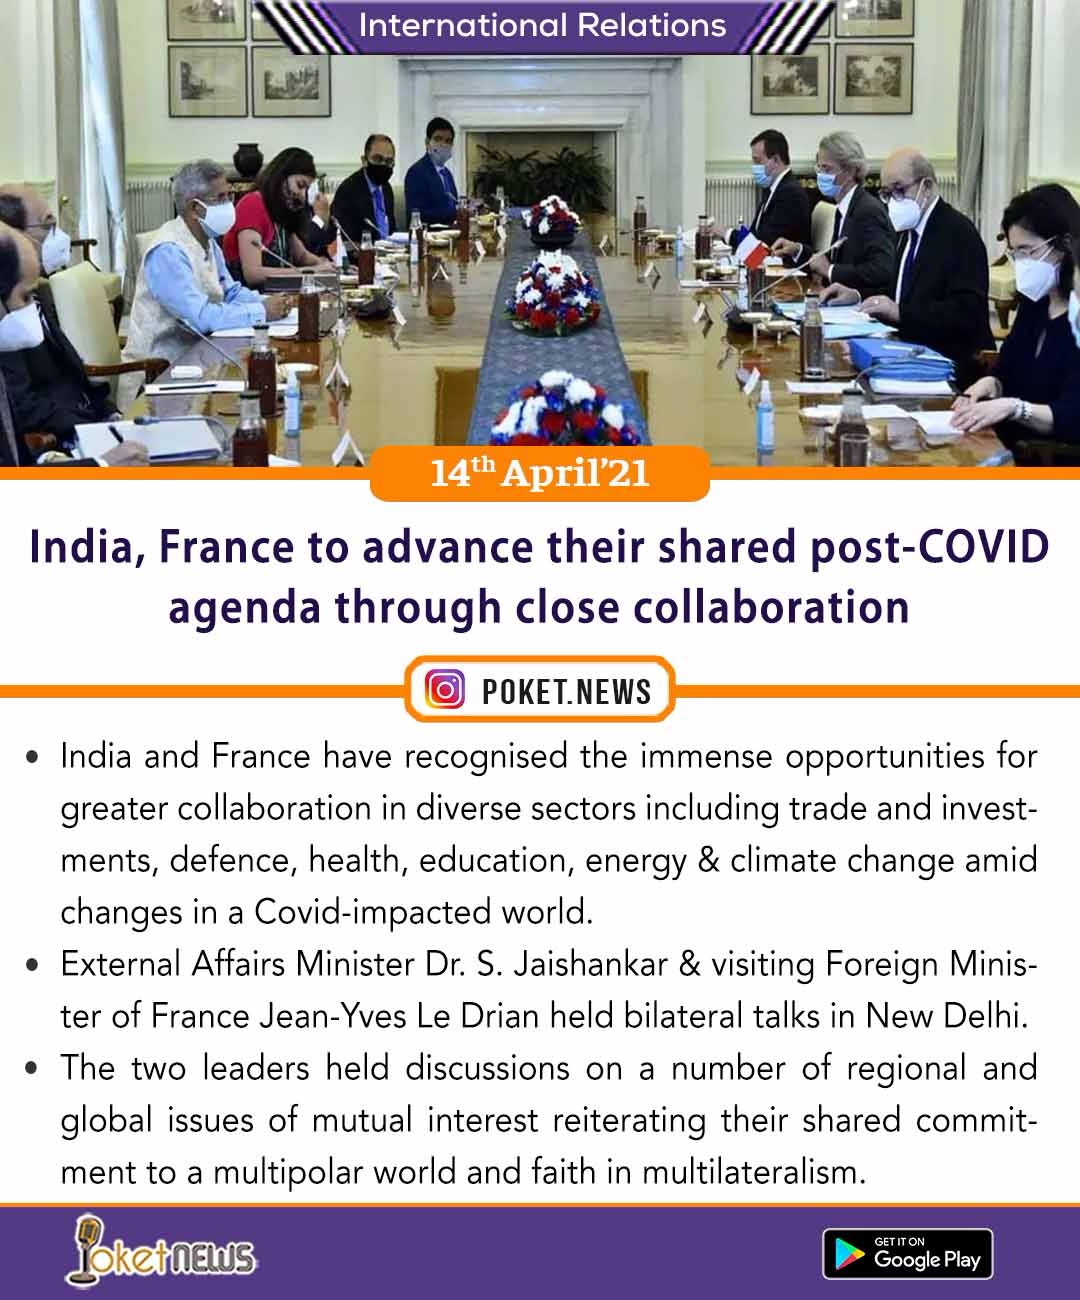 India, France to advance their shared post-COVID agenda through close collaboration